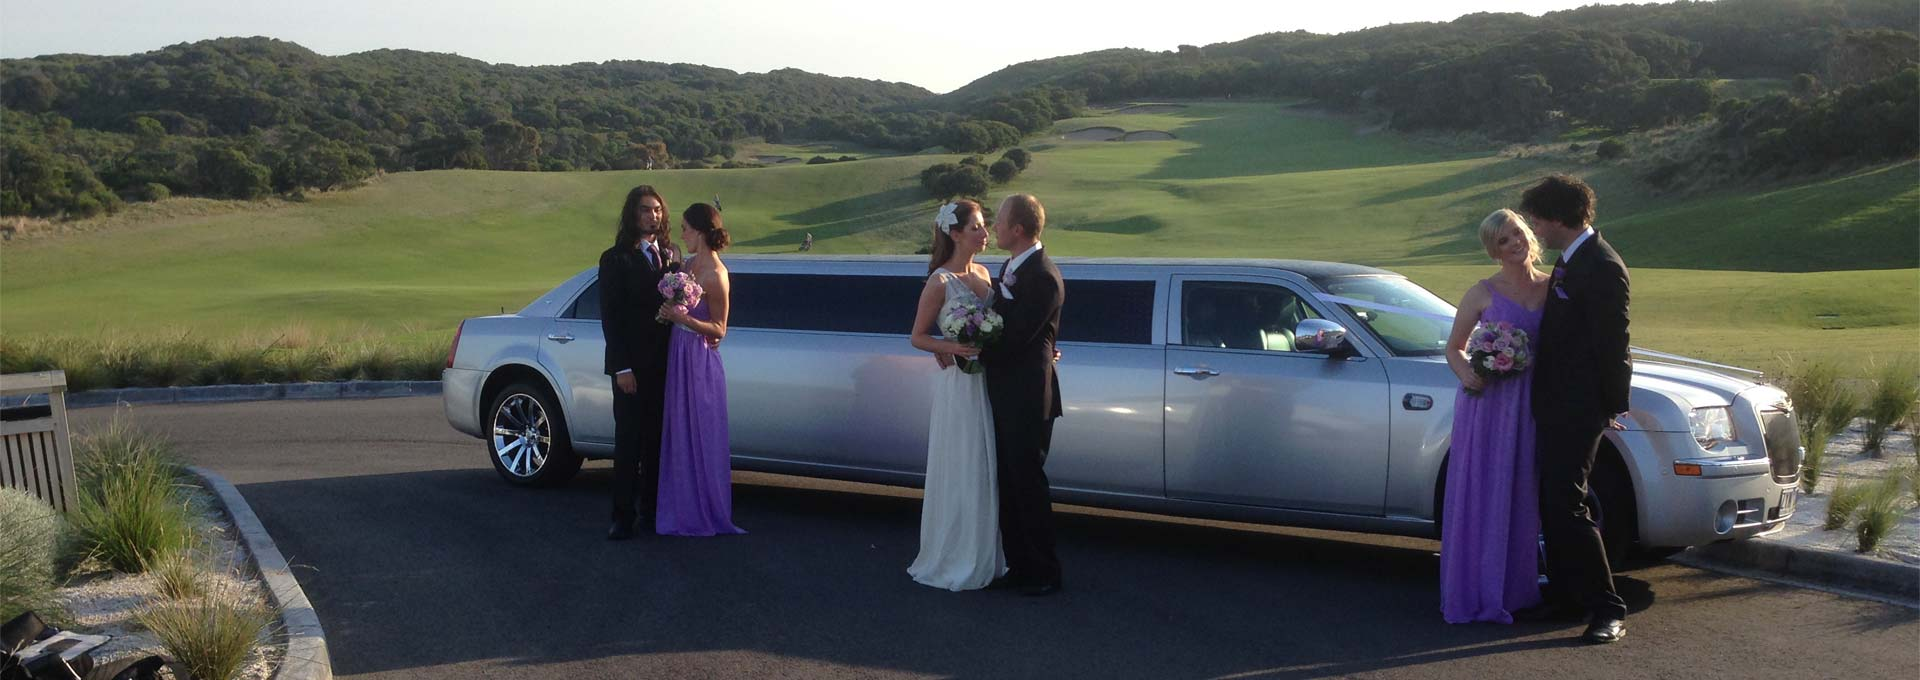 slide-wedding-limo-hire